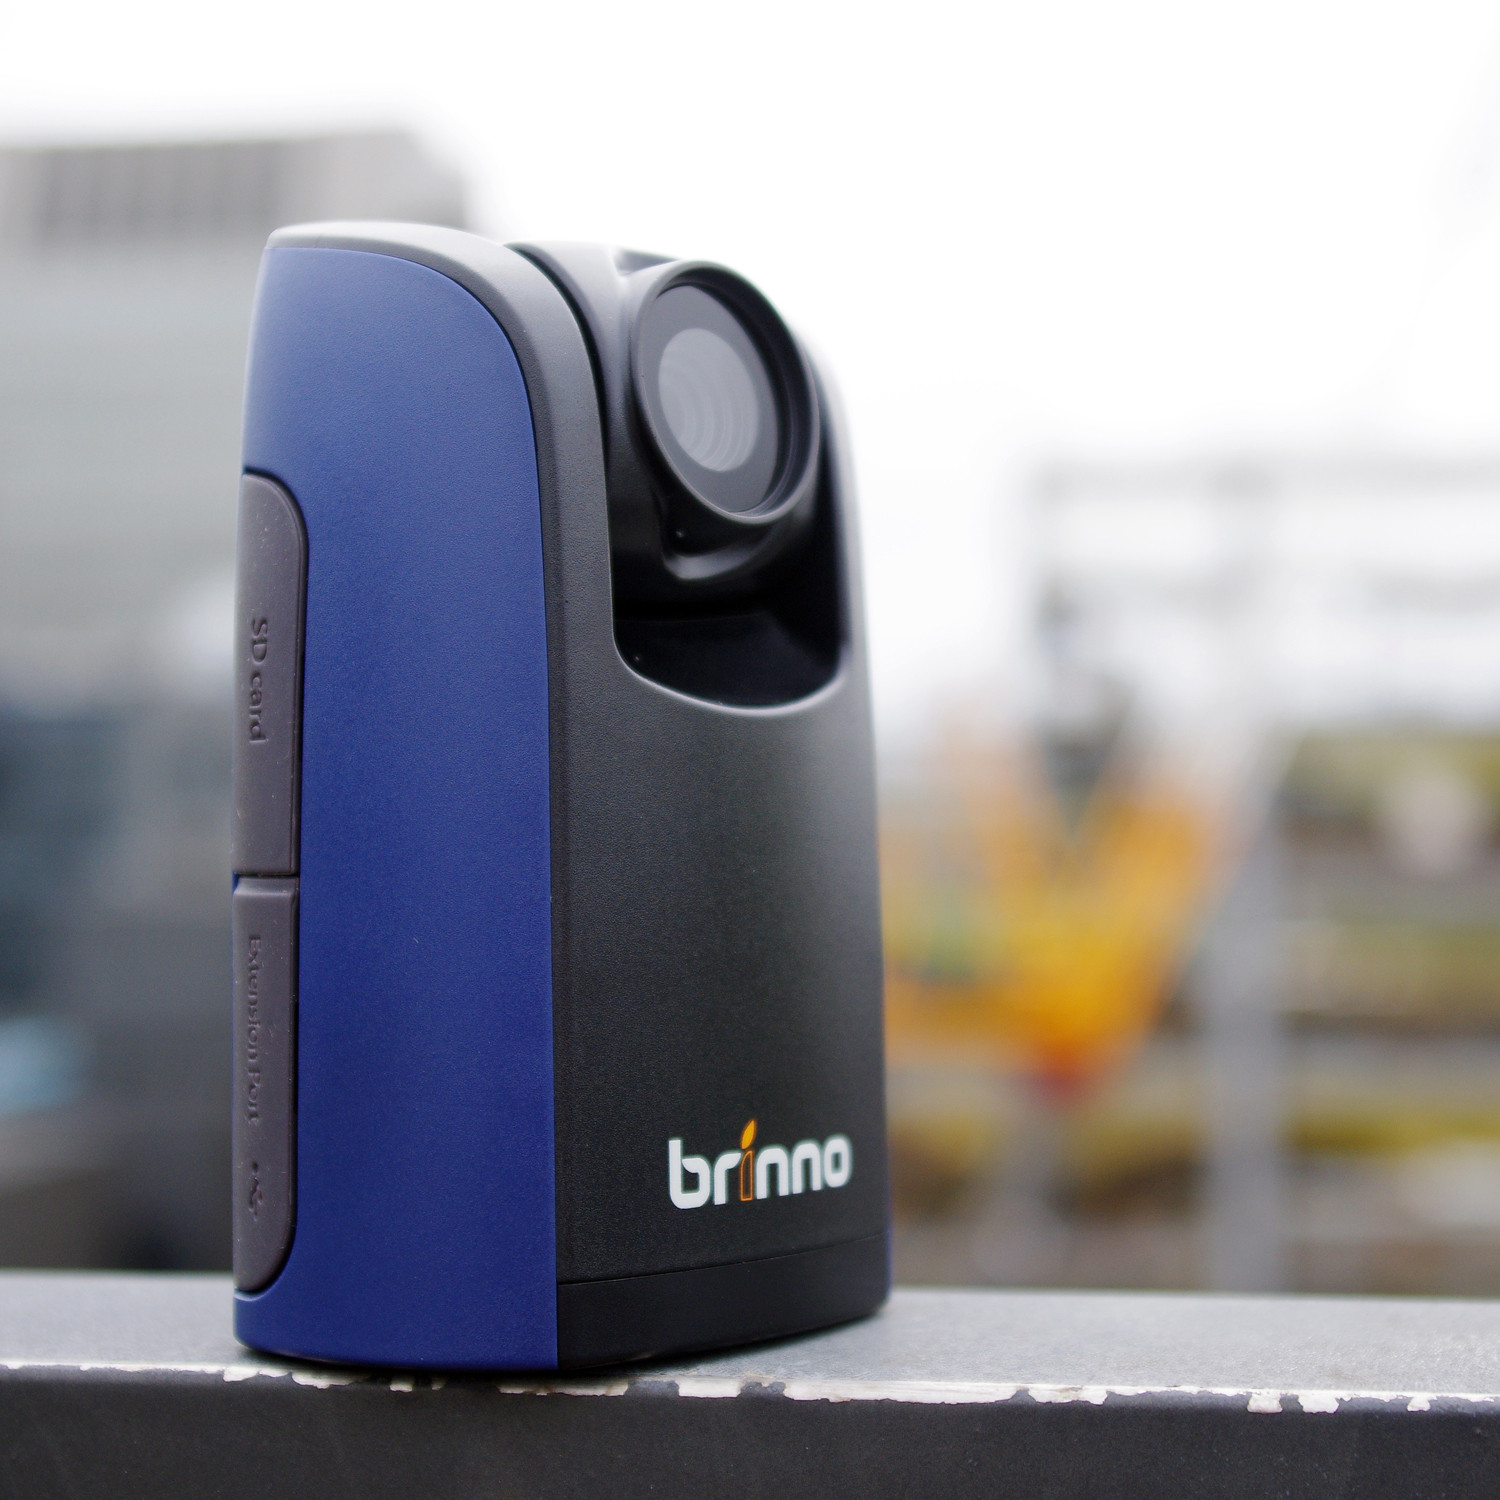 brinno time lapse camera manual